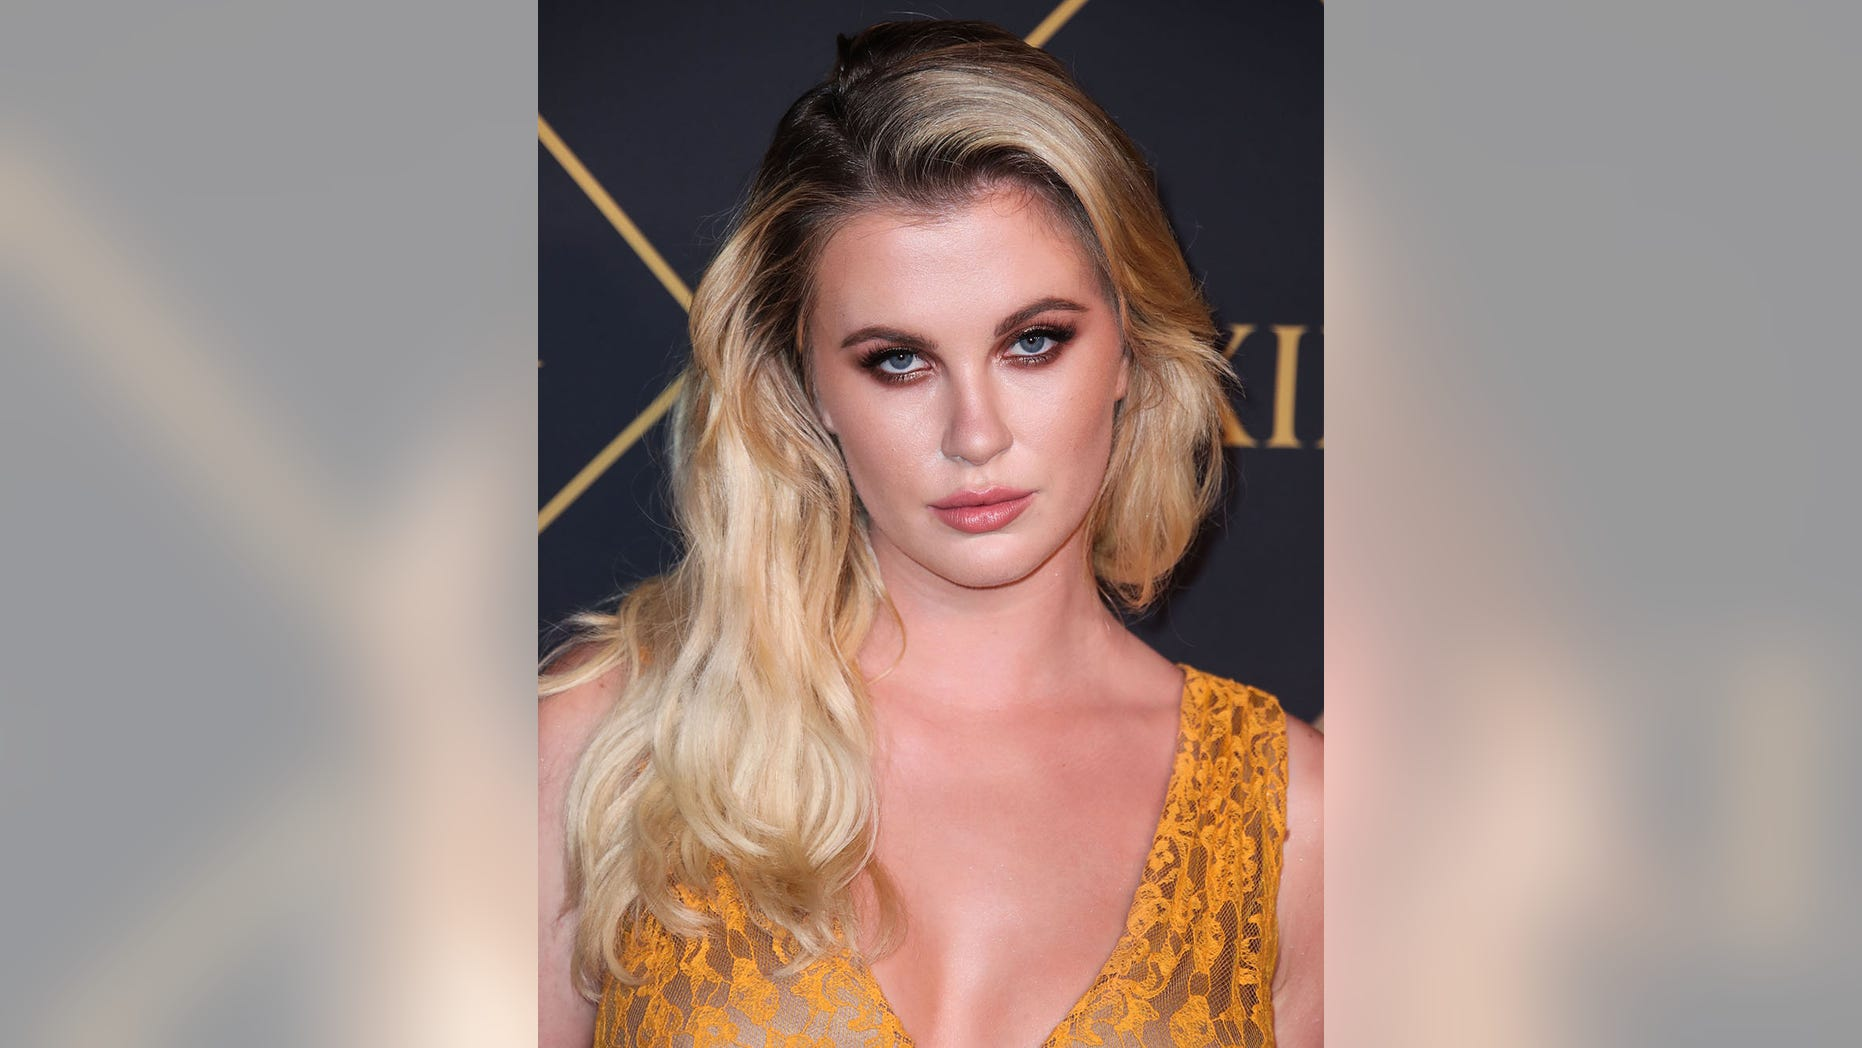 Model Ireland Baldwin got candid about her private battle with depression on Instagram.